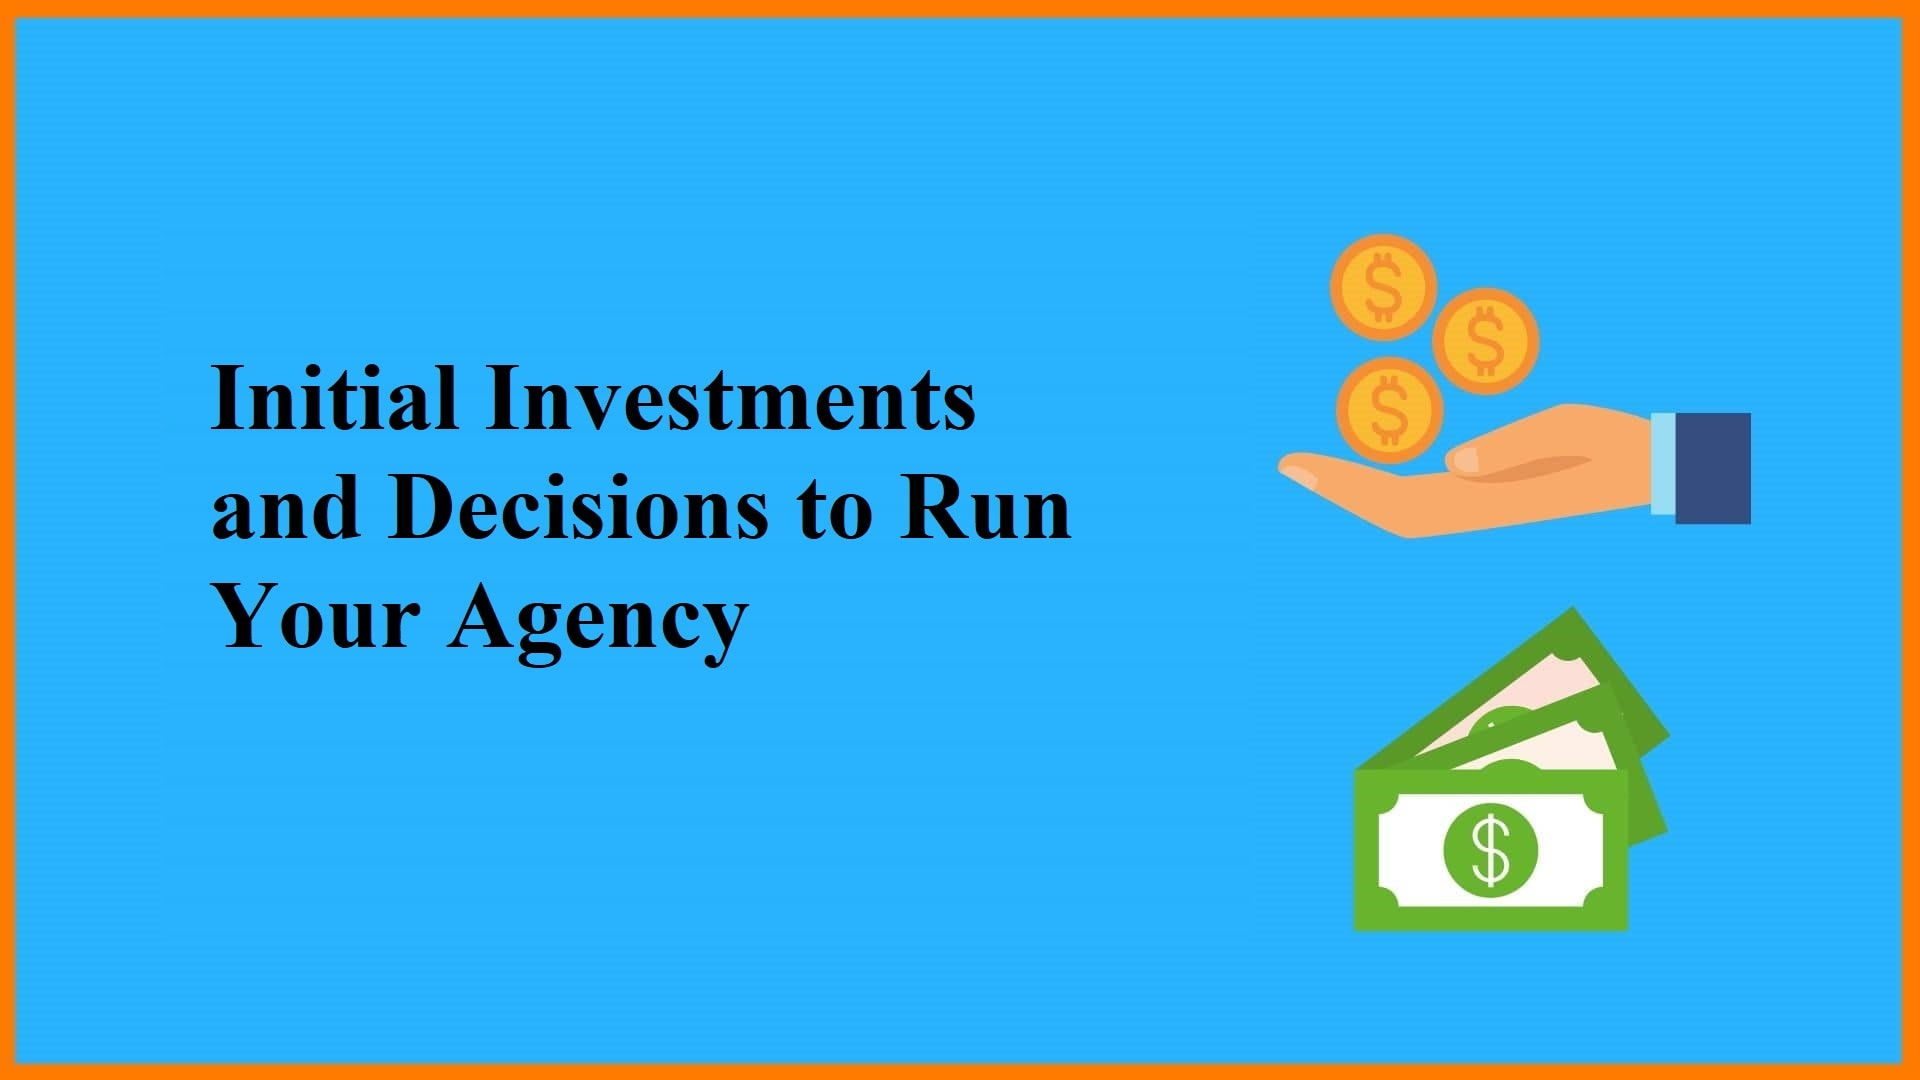 Initial Investments and Decisions to Run Your Agency